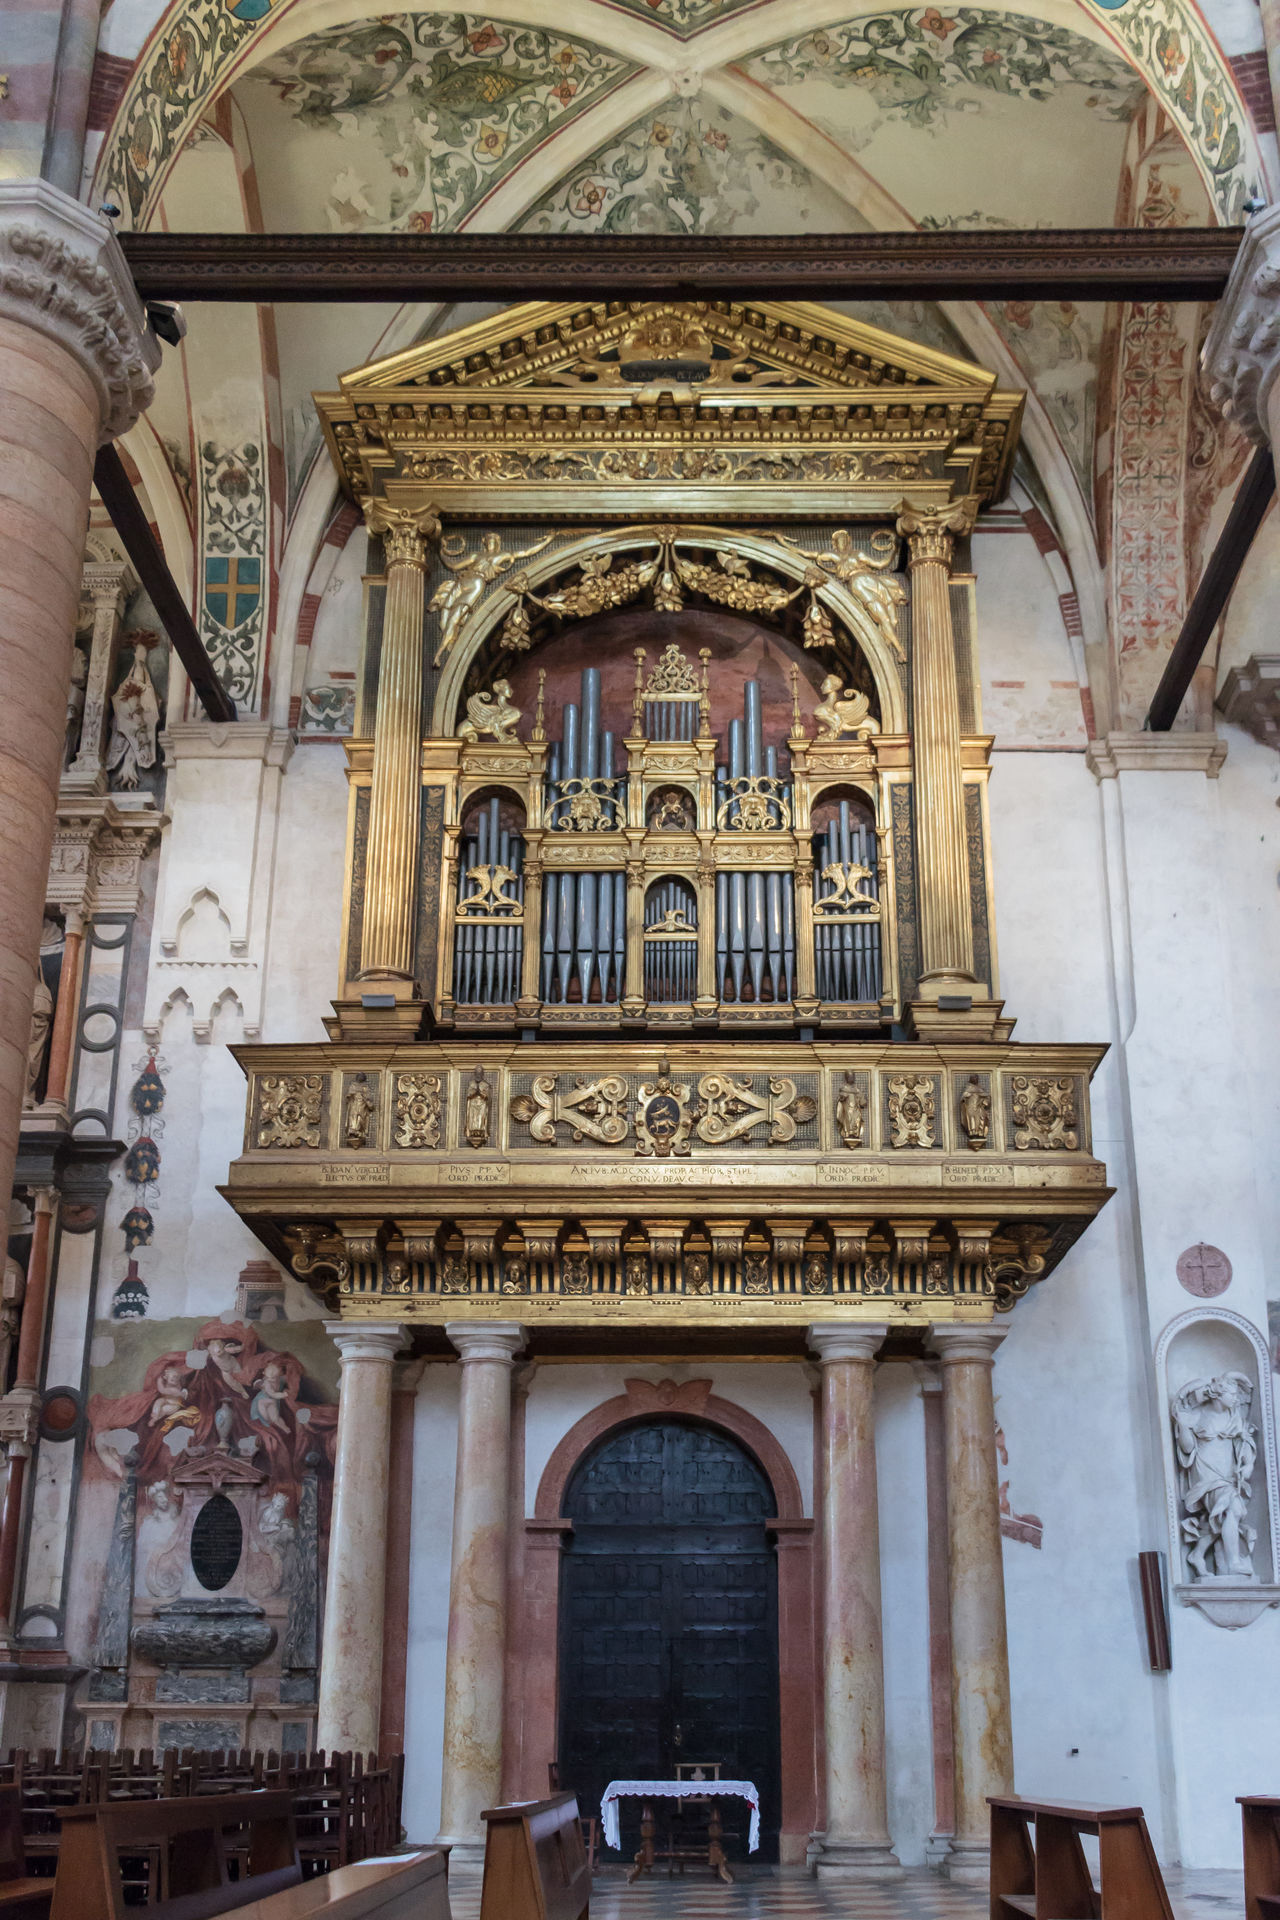 Verona, Italy - September 27, 2015 : Interior of Santa Anastasia Church in Verona, Italy. Santa Anastasia is a church of the Dominican Order in Verona, it was built in 1280 -1400 Anastasia Ancient Arch Architecture Art Catholic Christian Church City Culture Day European  Famous Interior Italian Light Medieval No People Old Religion Santa Travel Unesco Verona View